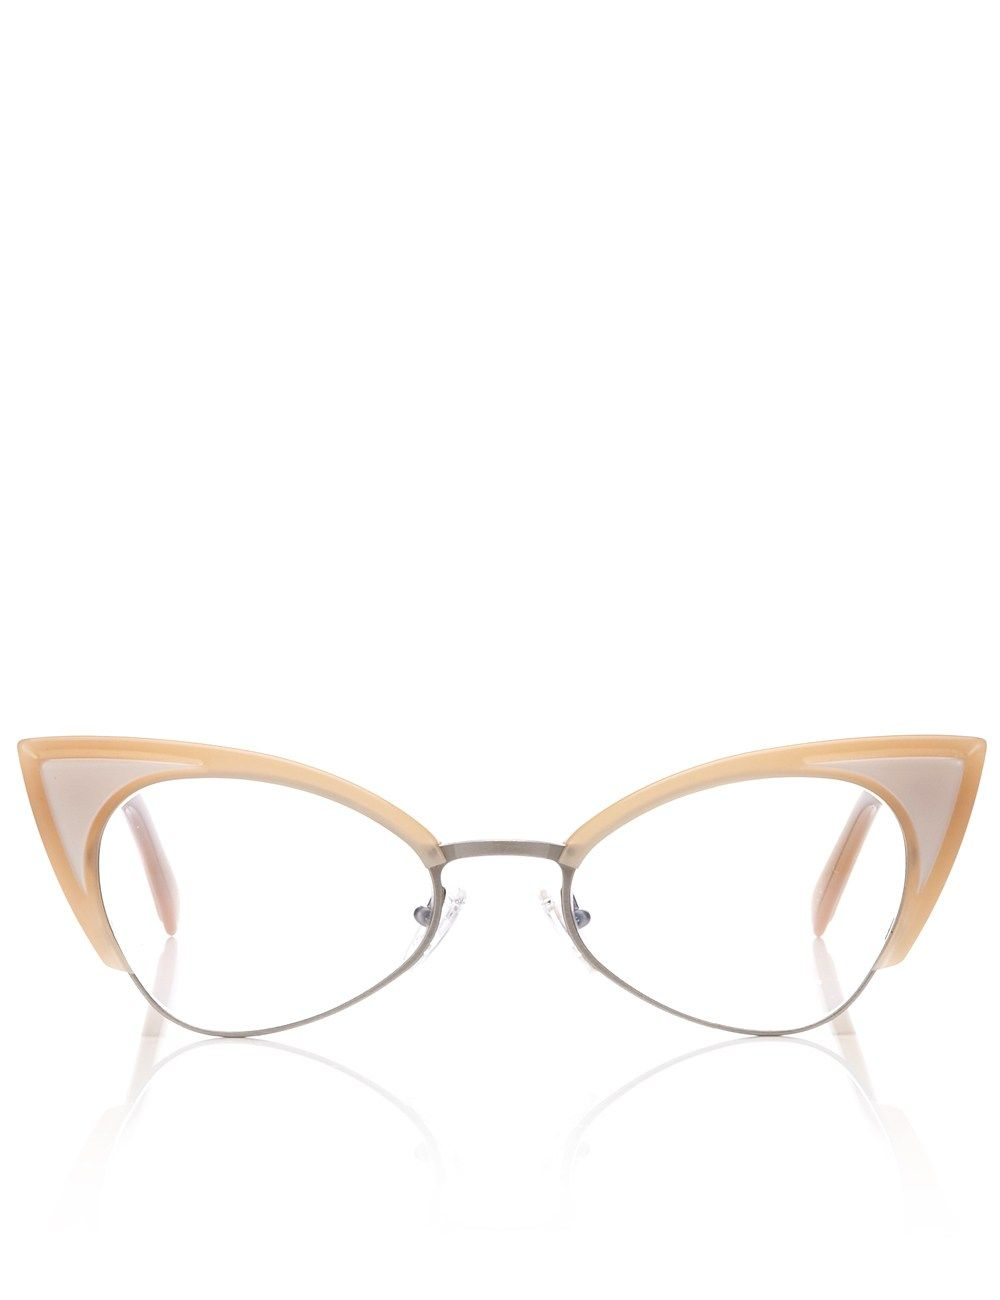 4d1d30f864f9 Nude Cat-Eye Glasses Andy Wolf